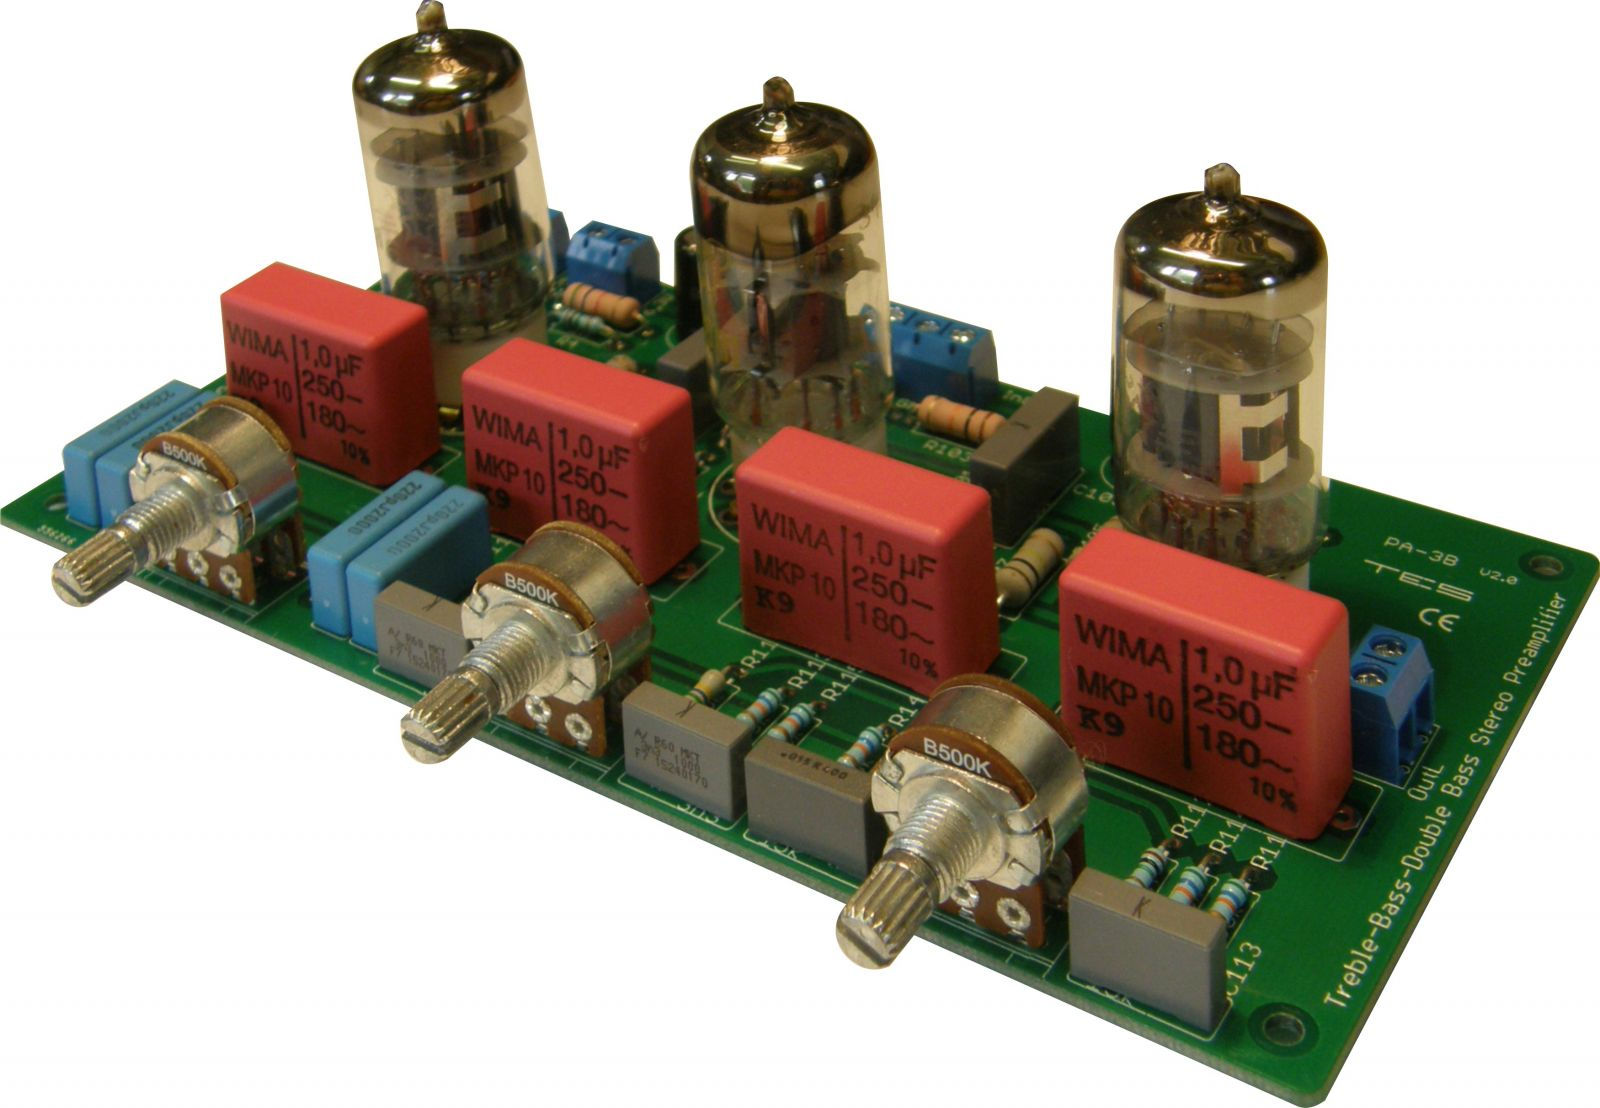 "3 Band Preamplifier - Double Bass, Bass, Treble, tubes on the parts side. Dimensions are 162mm x 84mm x 25mm high / 6.4"" x 3.3"" x 1"" high (without tubes) TES"